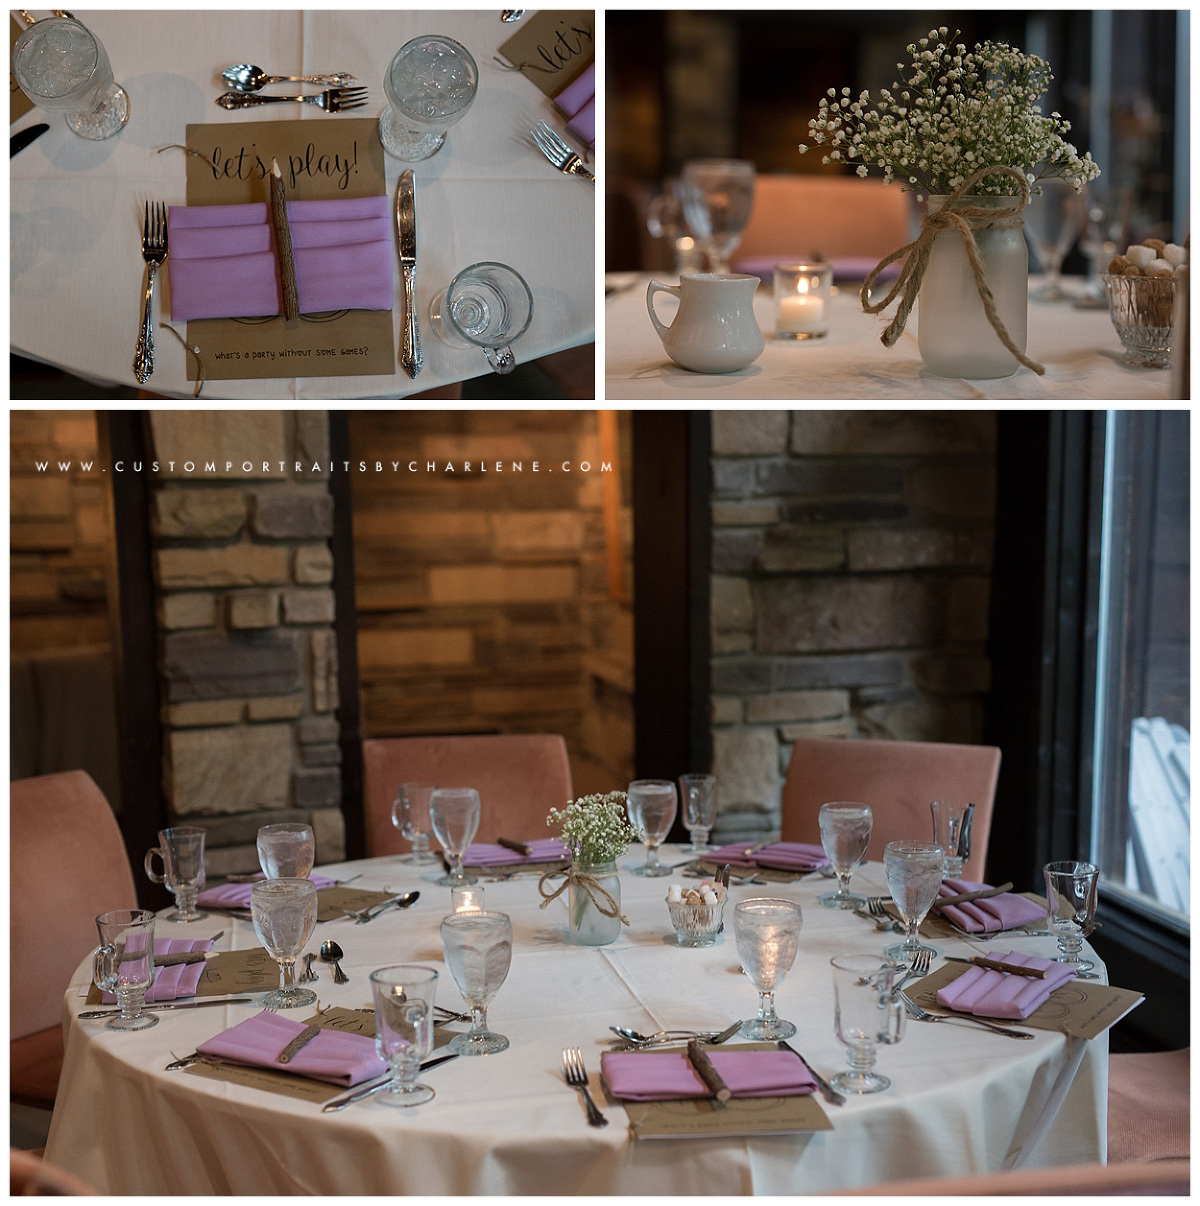 hyeholde restaurant bridal shower moon township wedding photographer custom portraits by charlene